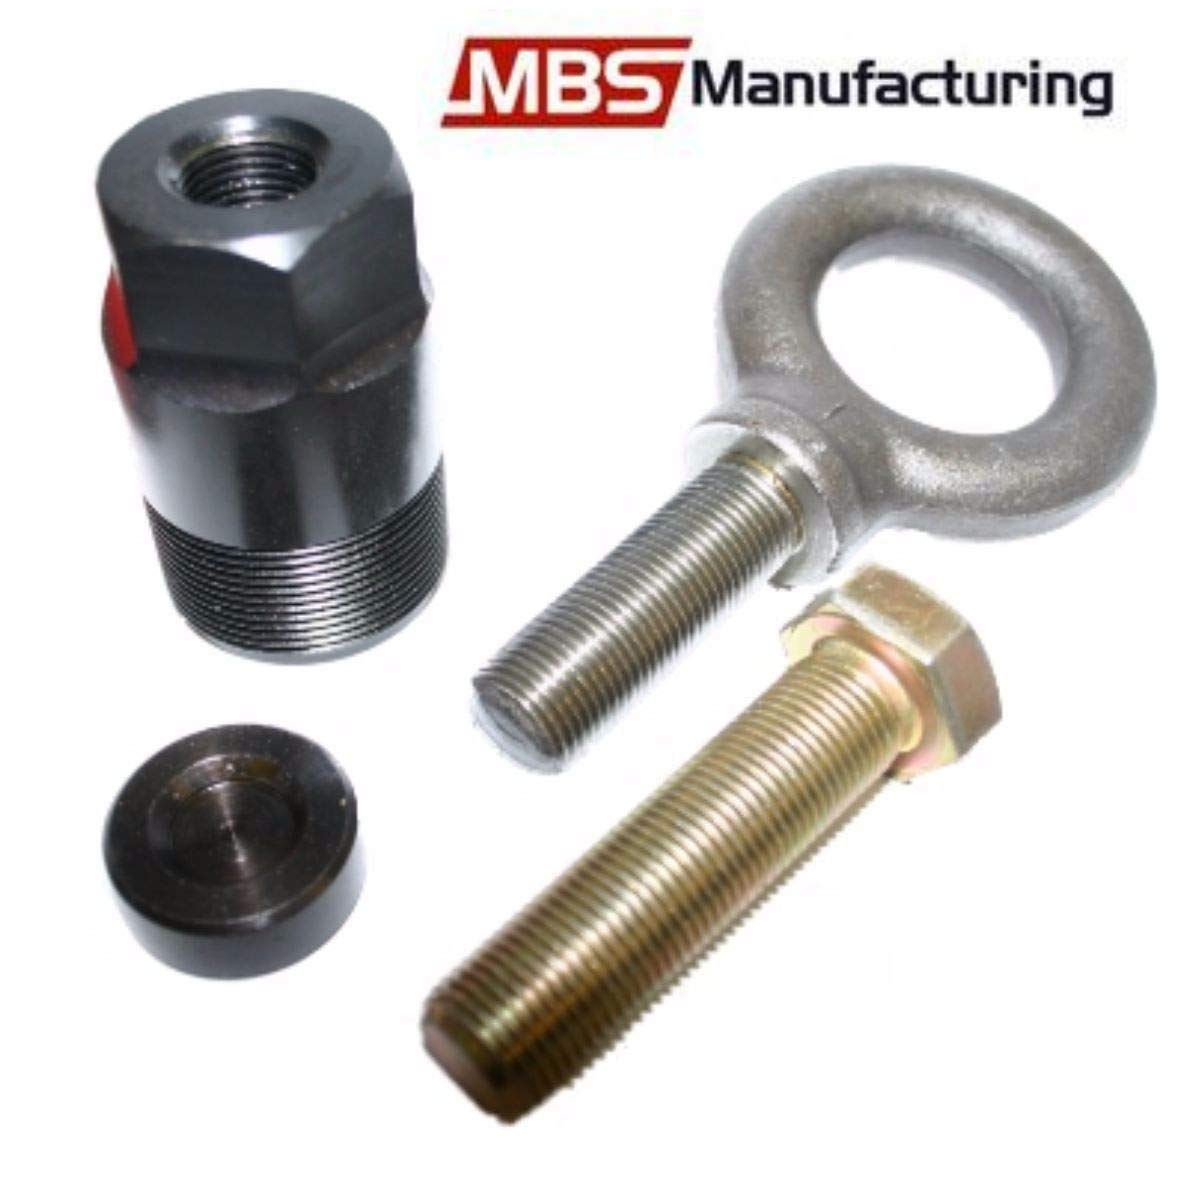 MBS Manufacturing Inc 1 1/2'-16 Flywheel Puller & Lift Eye Ring for Mercury Mariner, Force, Yamaha